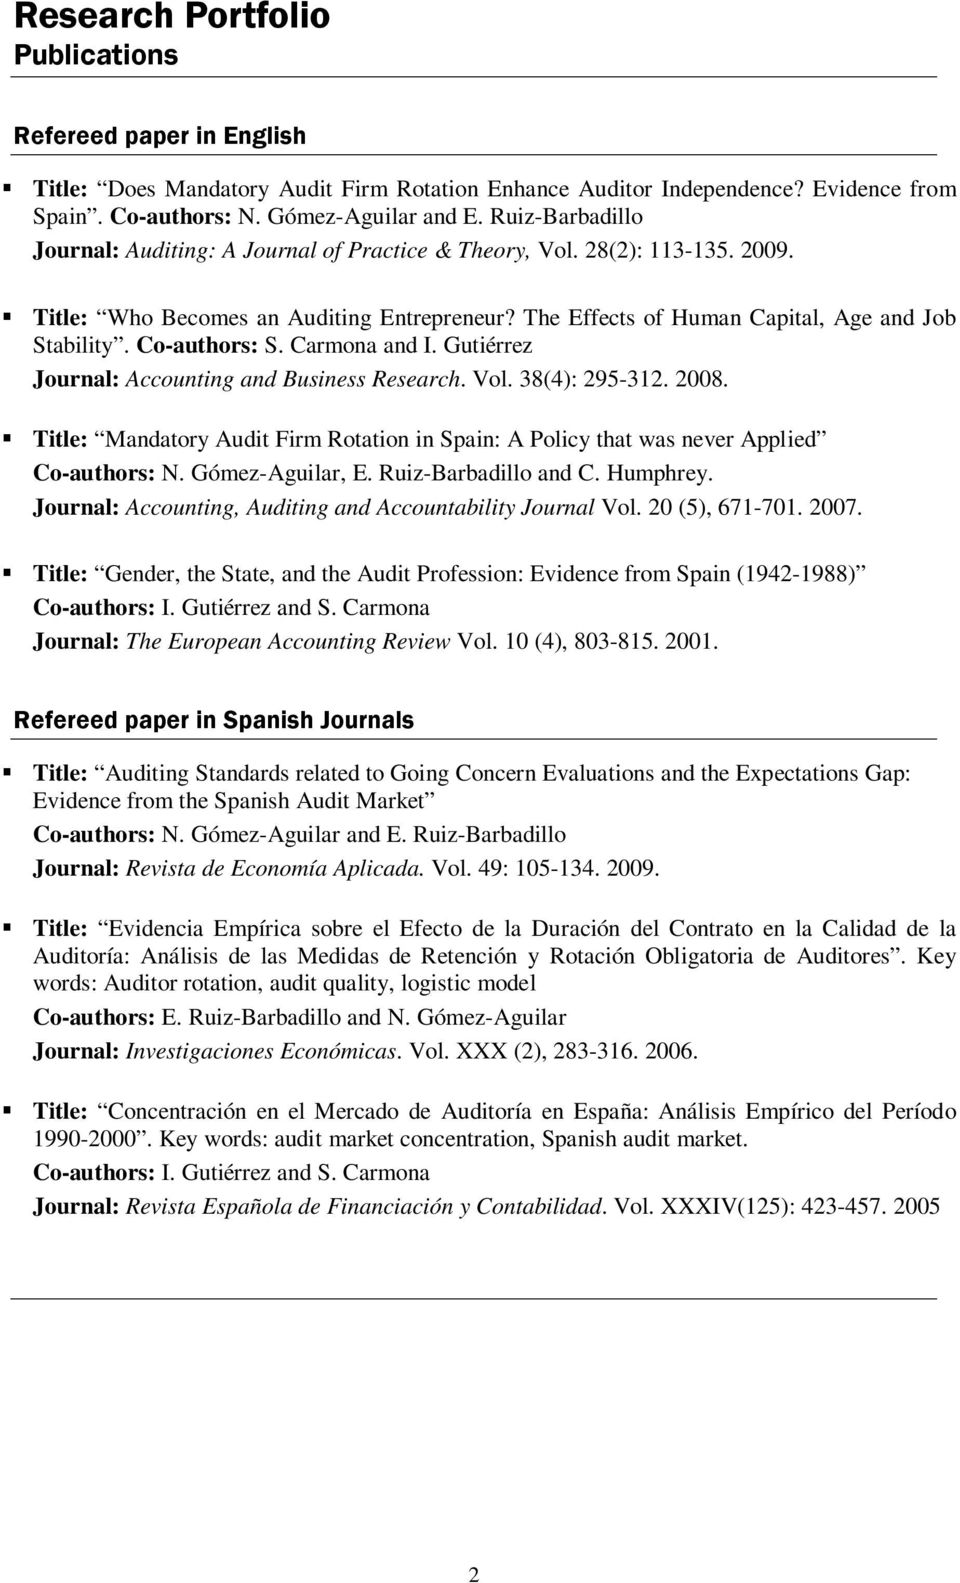 Co-authors: S. Carmona and I. Gutiérrez Journal: Accounting and Business Research. Vol. 38(4): 295-312. 2008.